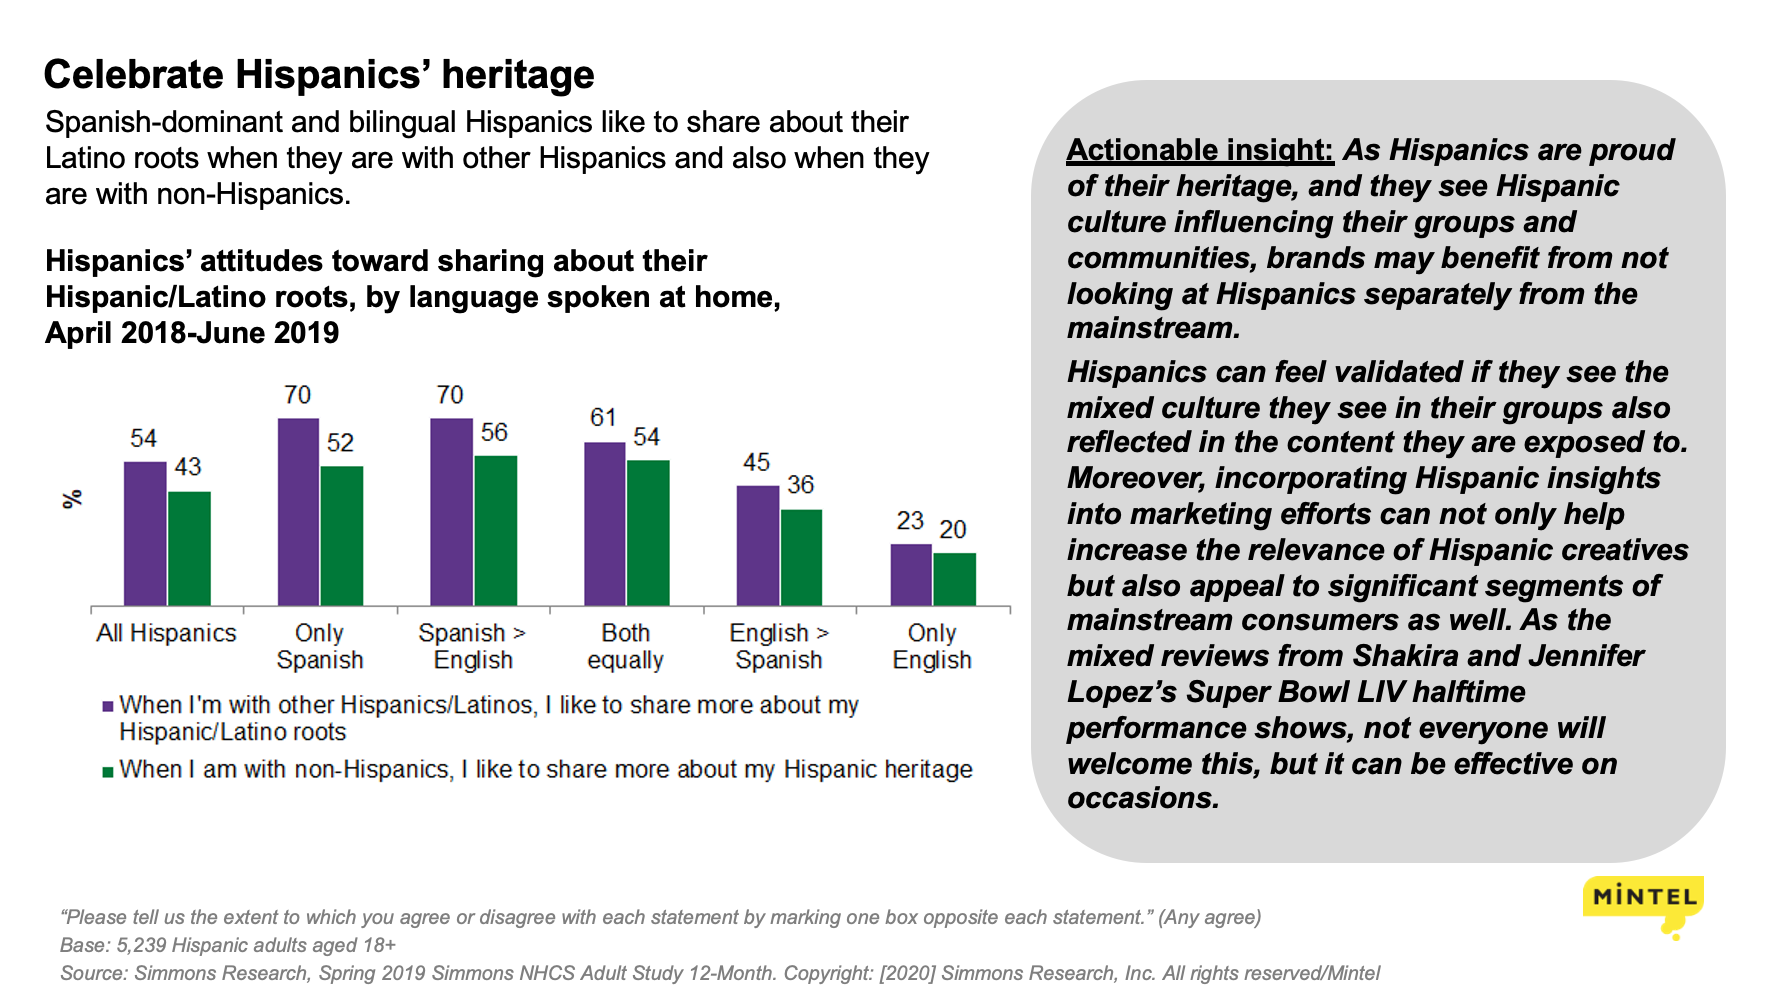 Graphic from Mintel regarding Hispanic's preferences regarding sharing about their Latino roots.